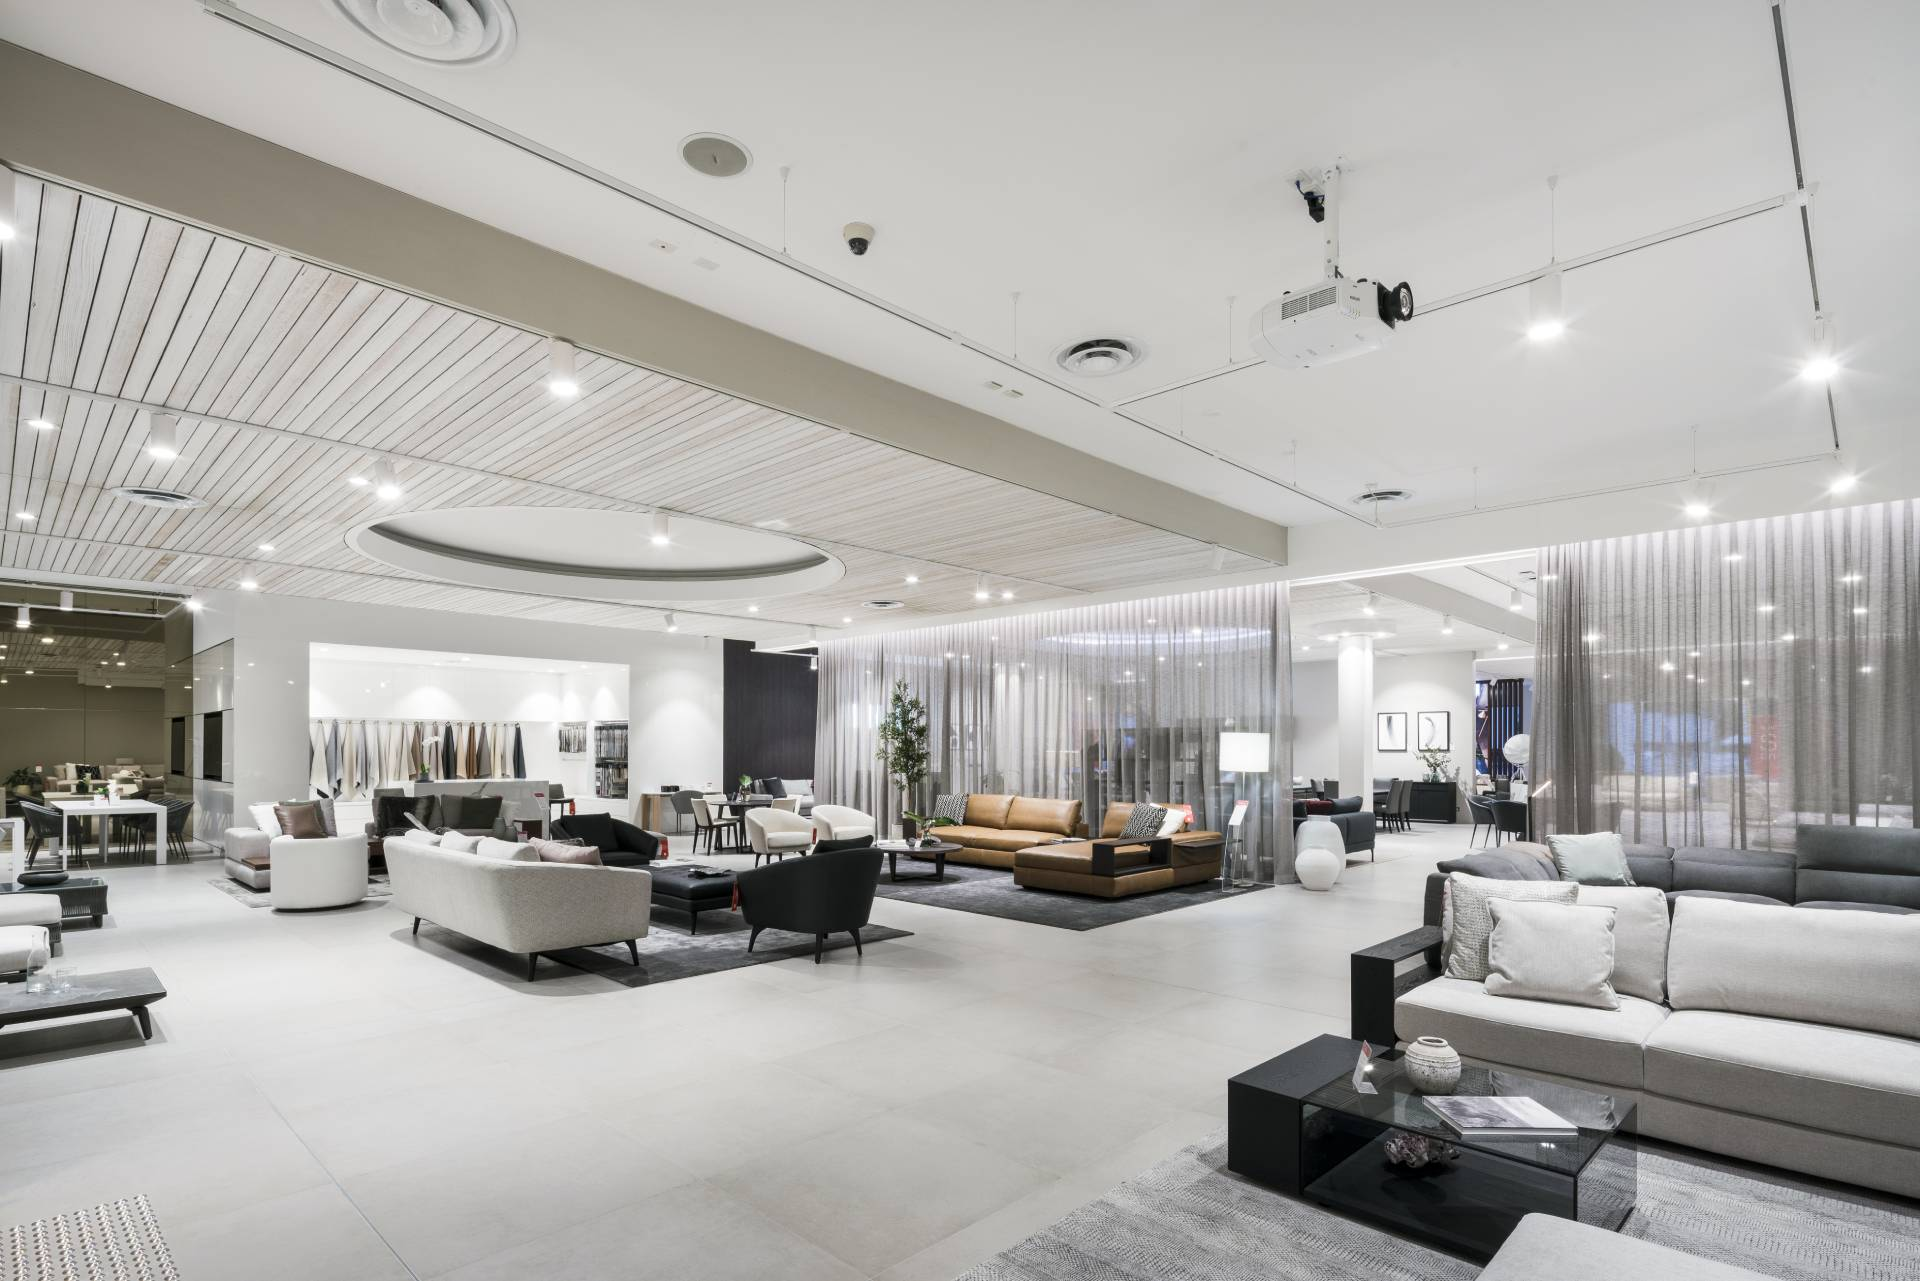 King Living Southport store design